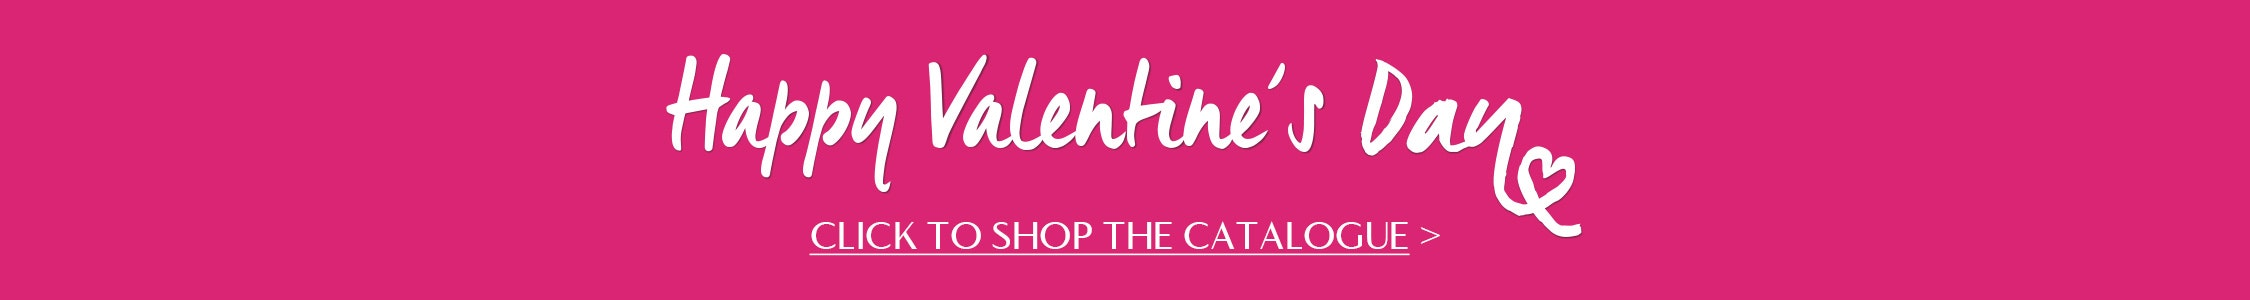 Shop AmericanSwiss Valentine's Gift Catalogue